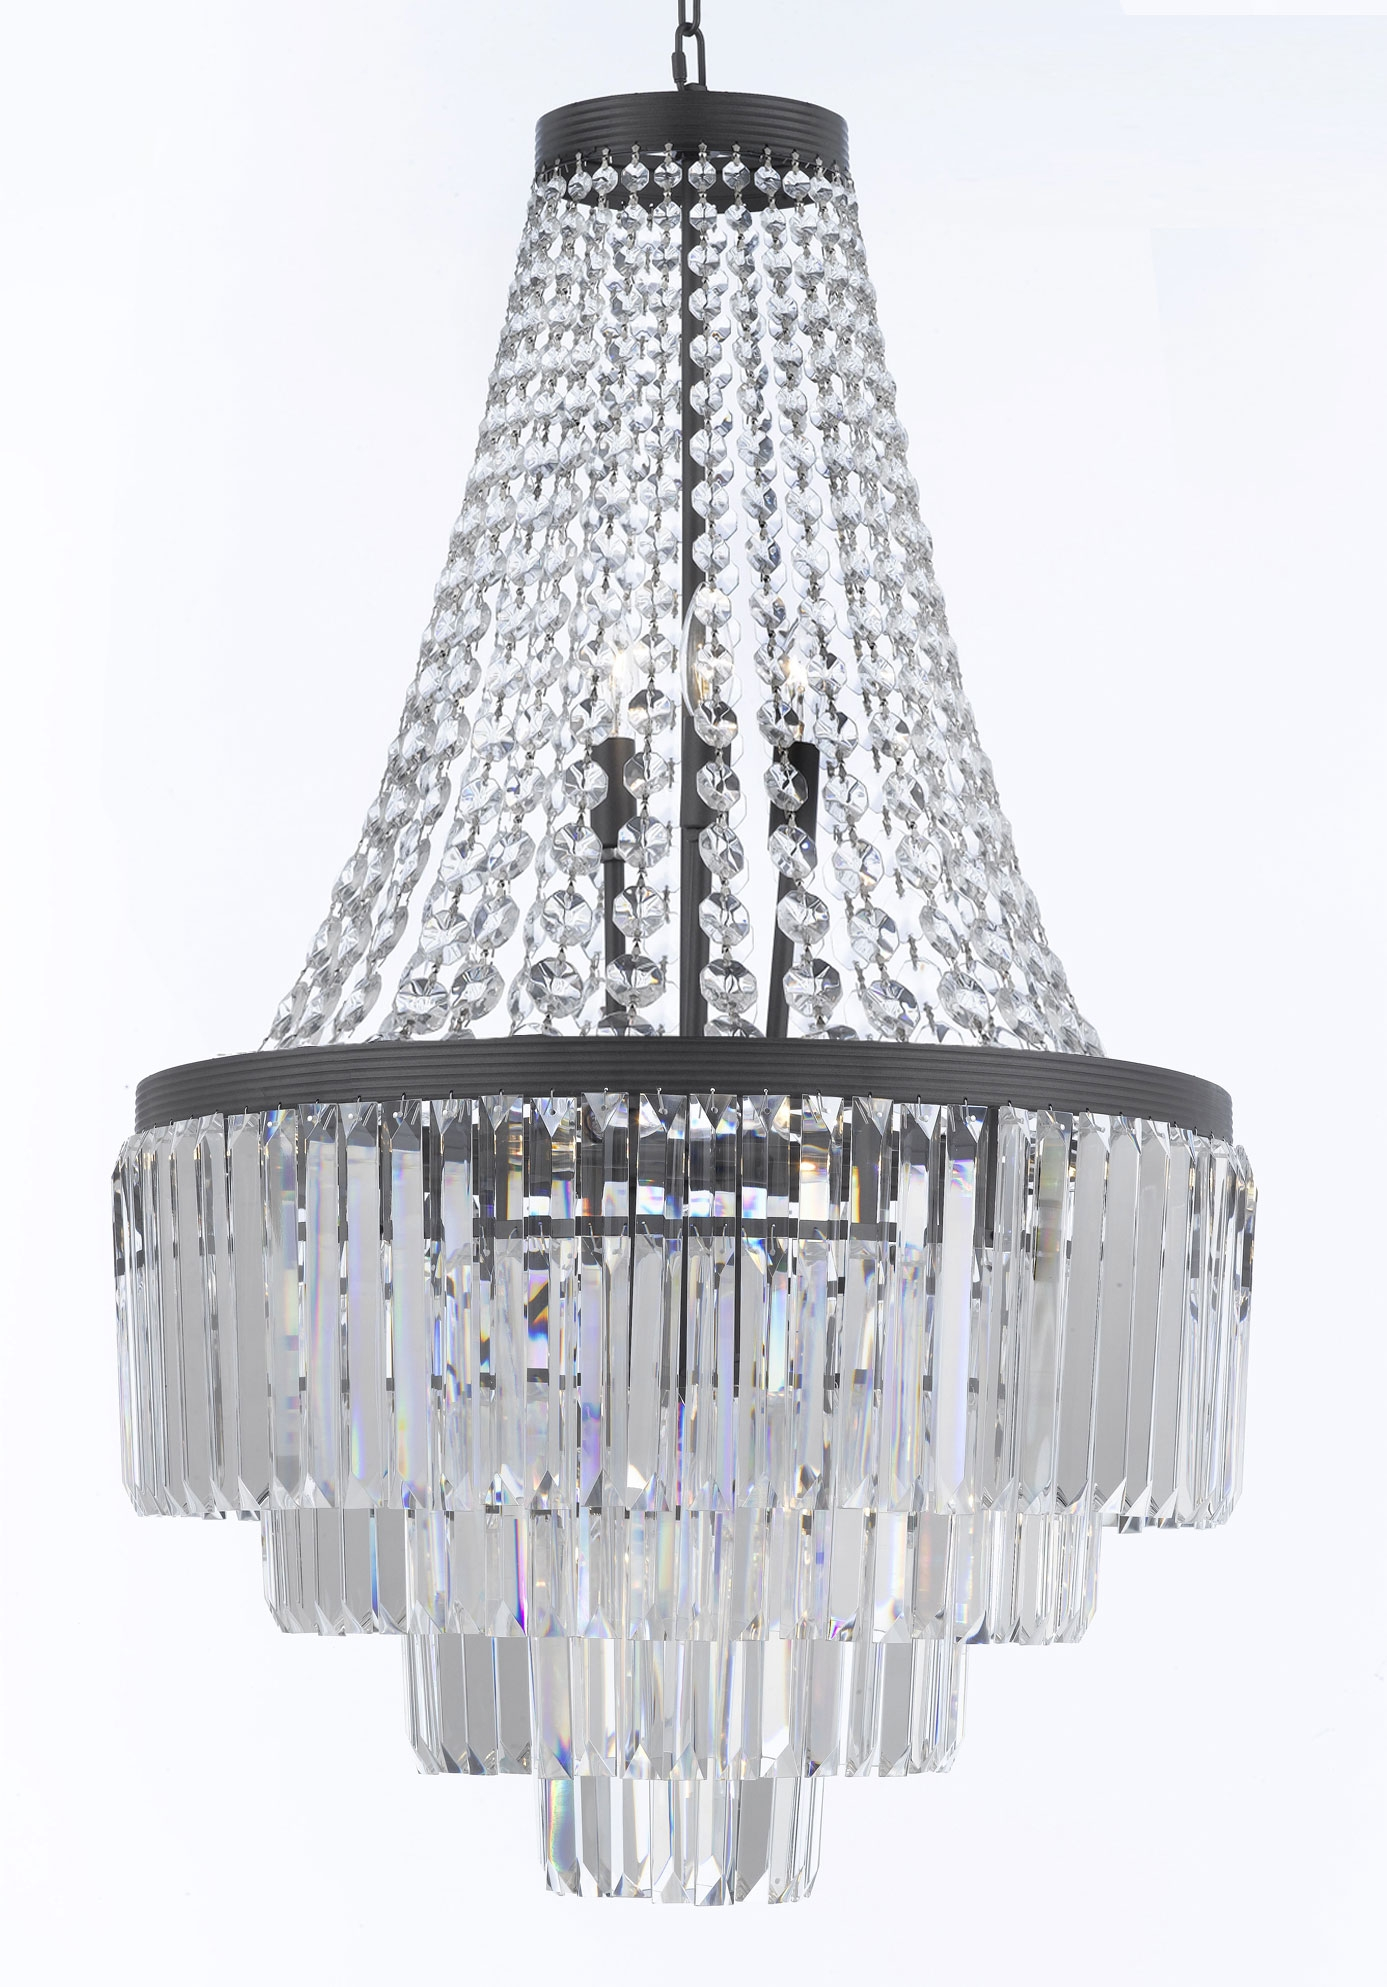 G7 11009 Gallery Chandeliers Retro Odeon Crystal Glass Fringe 3 Throughout 3 Tier Crystal Chandelier (Image 8 of 15)